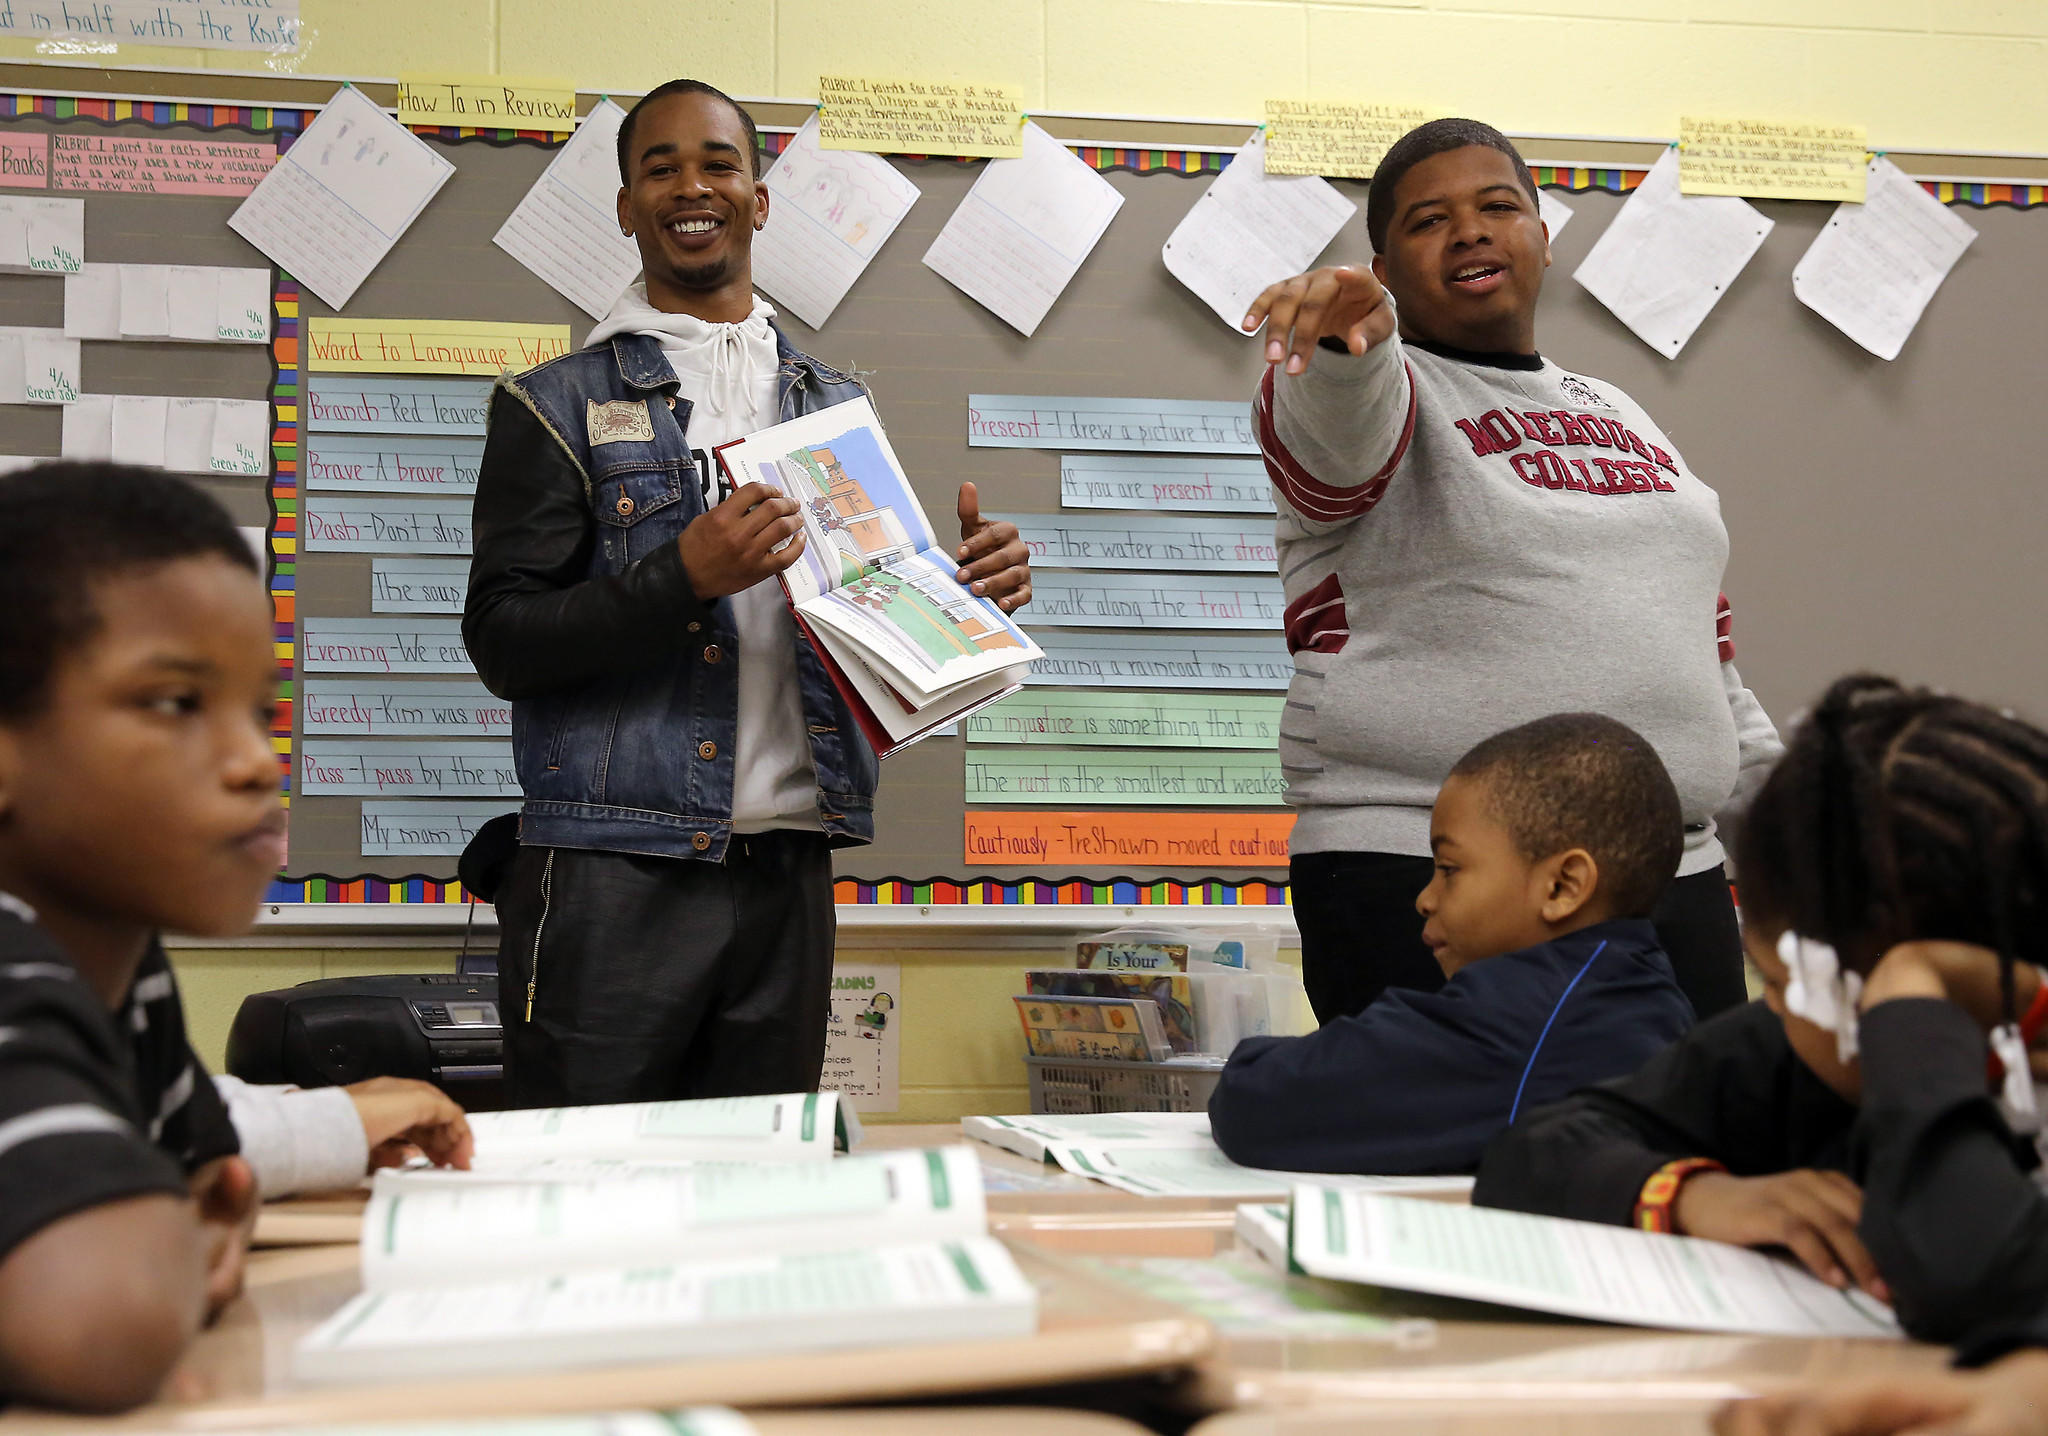 Morehouse College students Shawn Tomlinson, left, and Corey Hardiman read to children at Lavizzo elementary school.